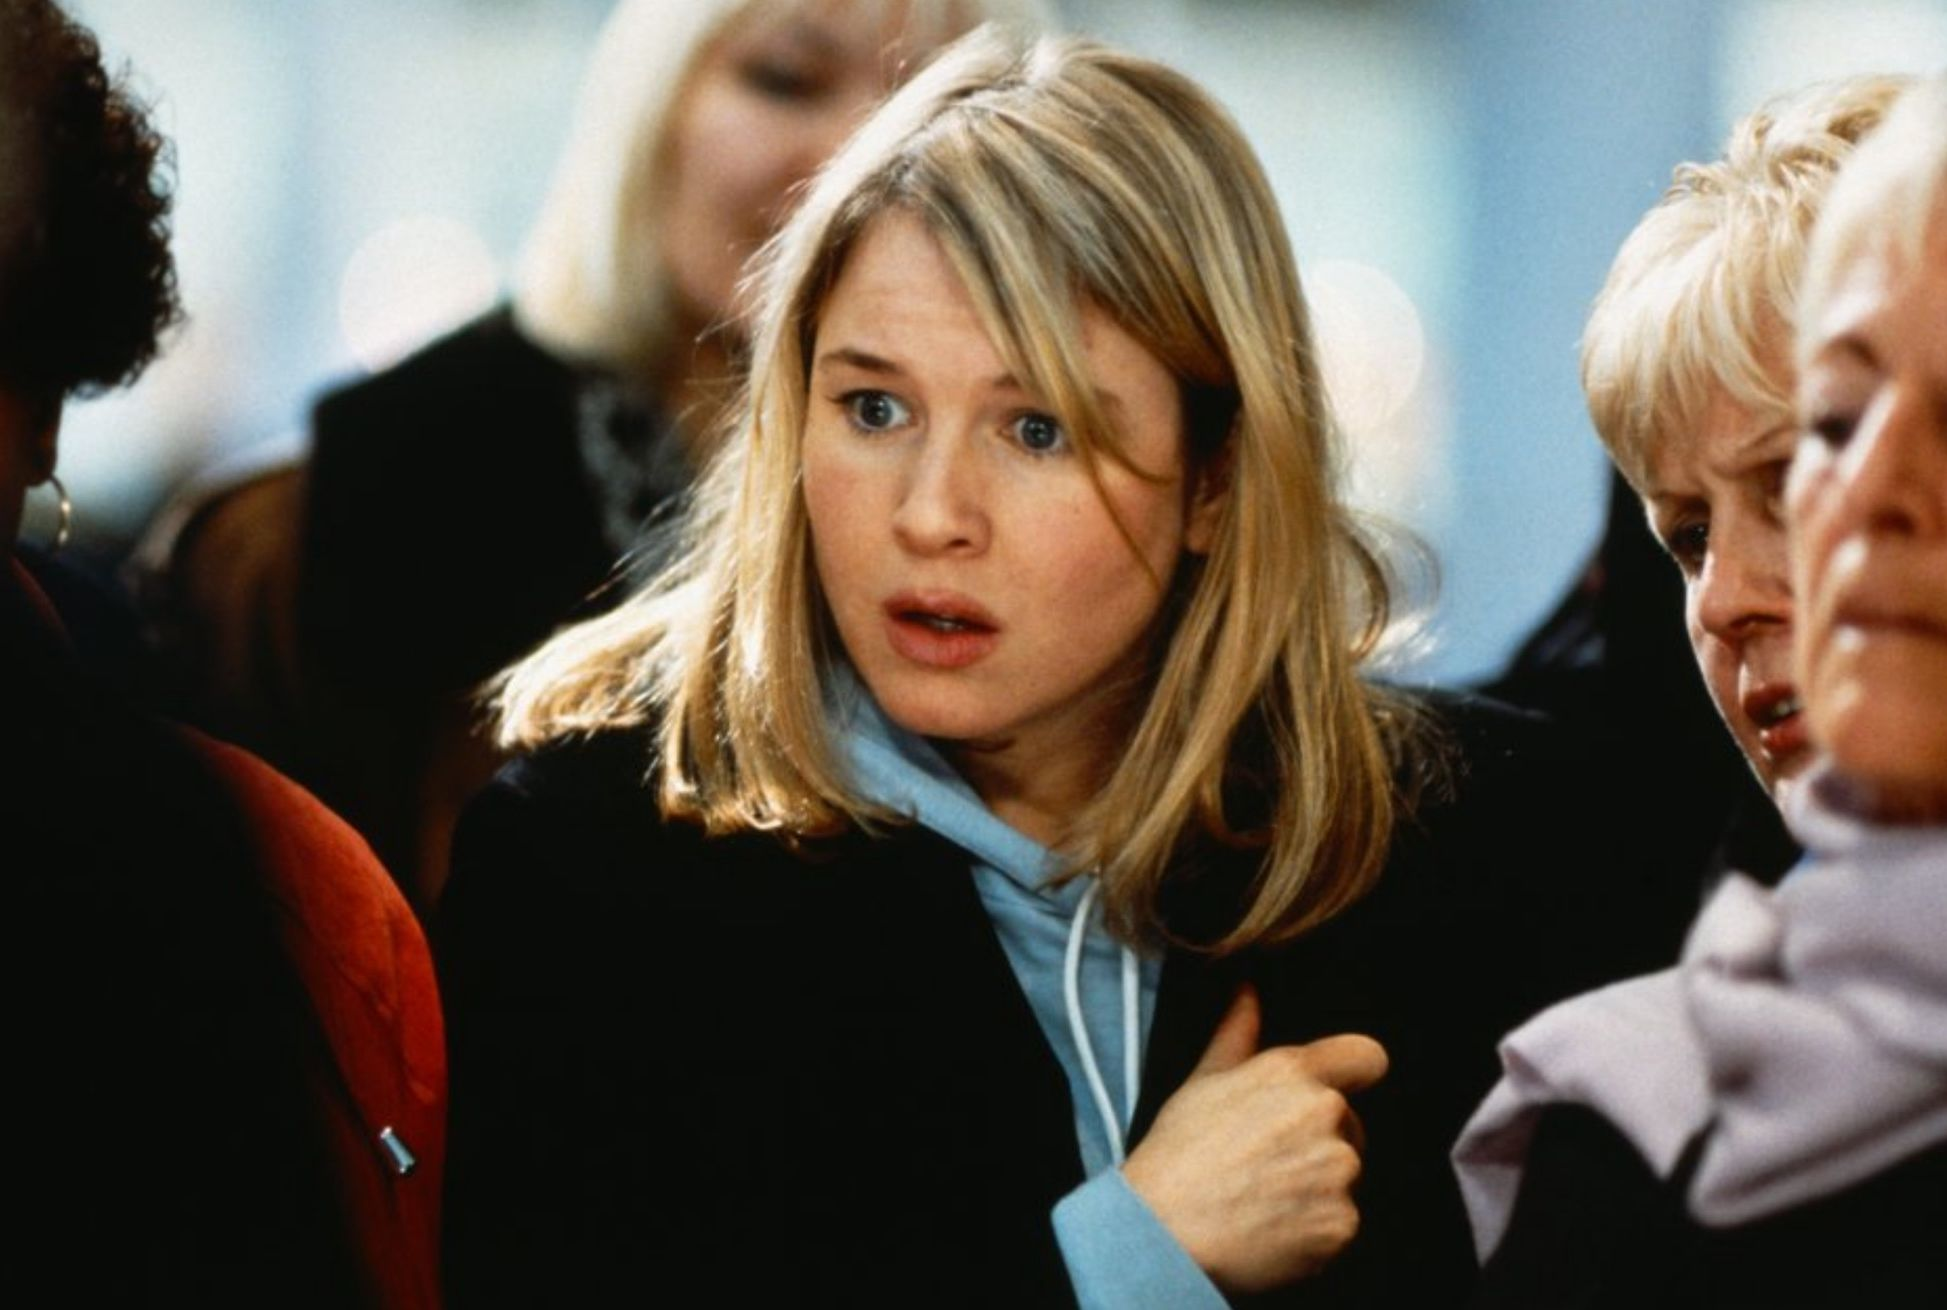 bridget jones diary hed 25 Unpopular Casting Choices That Actually Turned Out Great